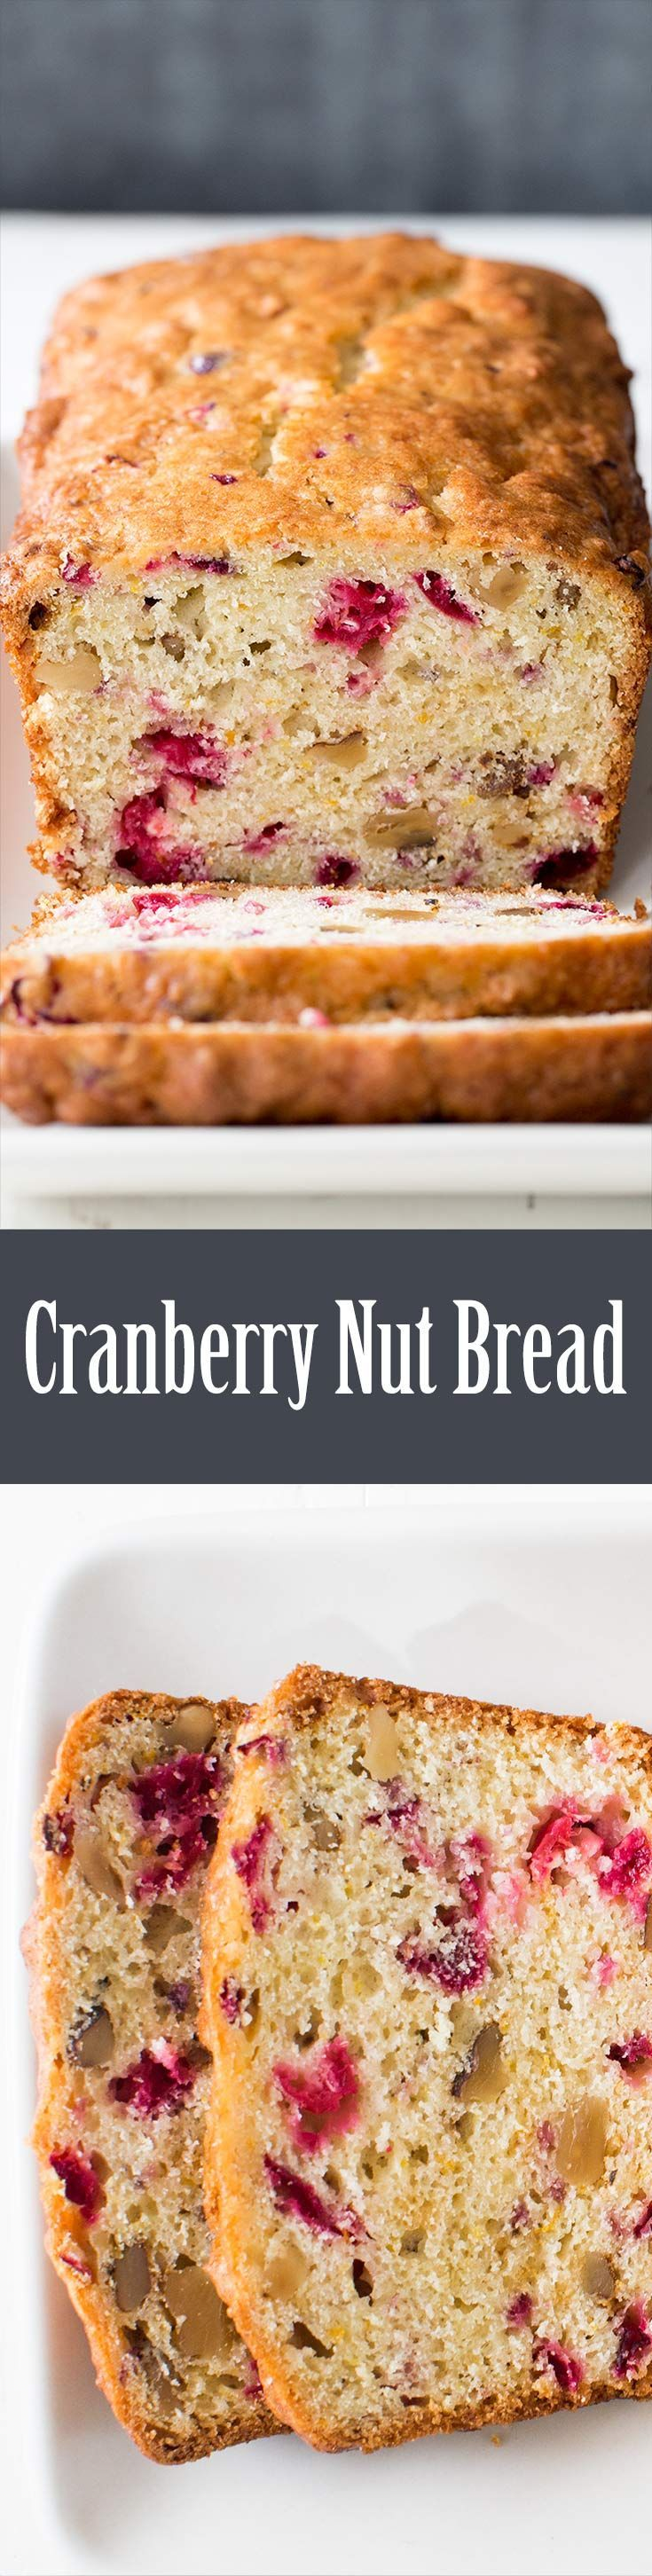 Delicious cranberry nut bread! With chopped cranberries, walnuts, and hints of orange. Perfect for the holidays. On http://SimplyRecipes.com